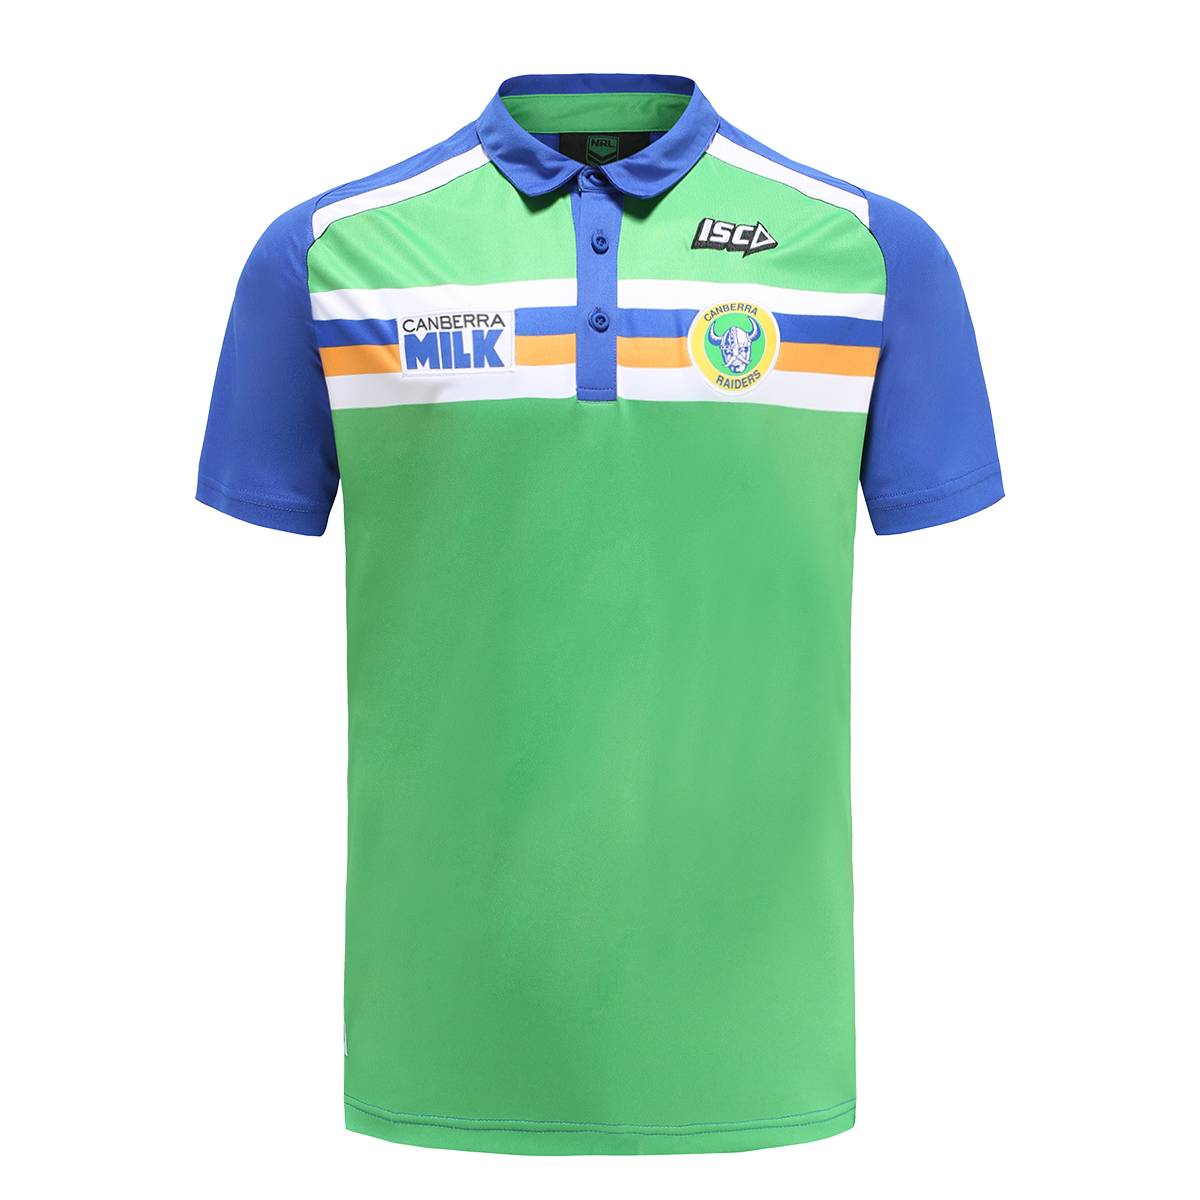 2021 ADULTS HERITAGE POLO0